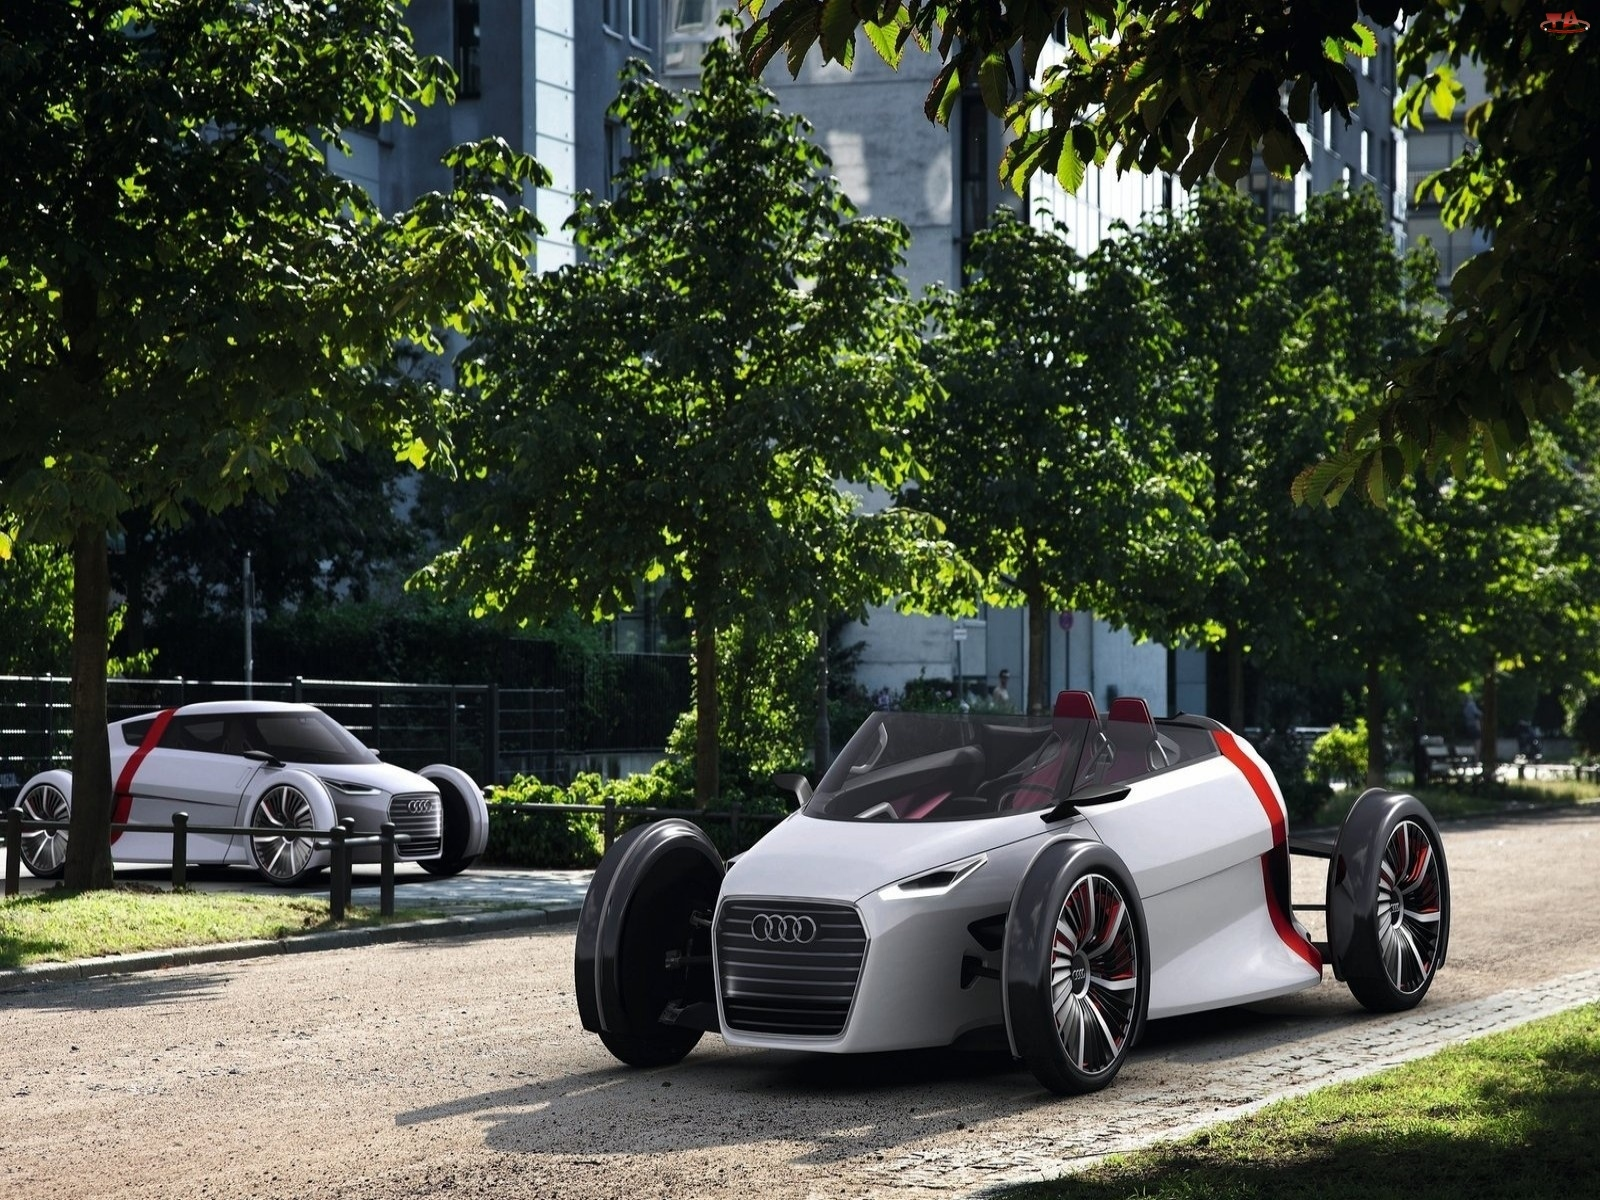 Audi Urban Spyder, Parking